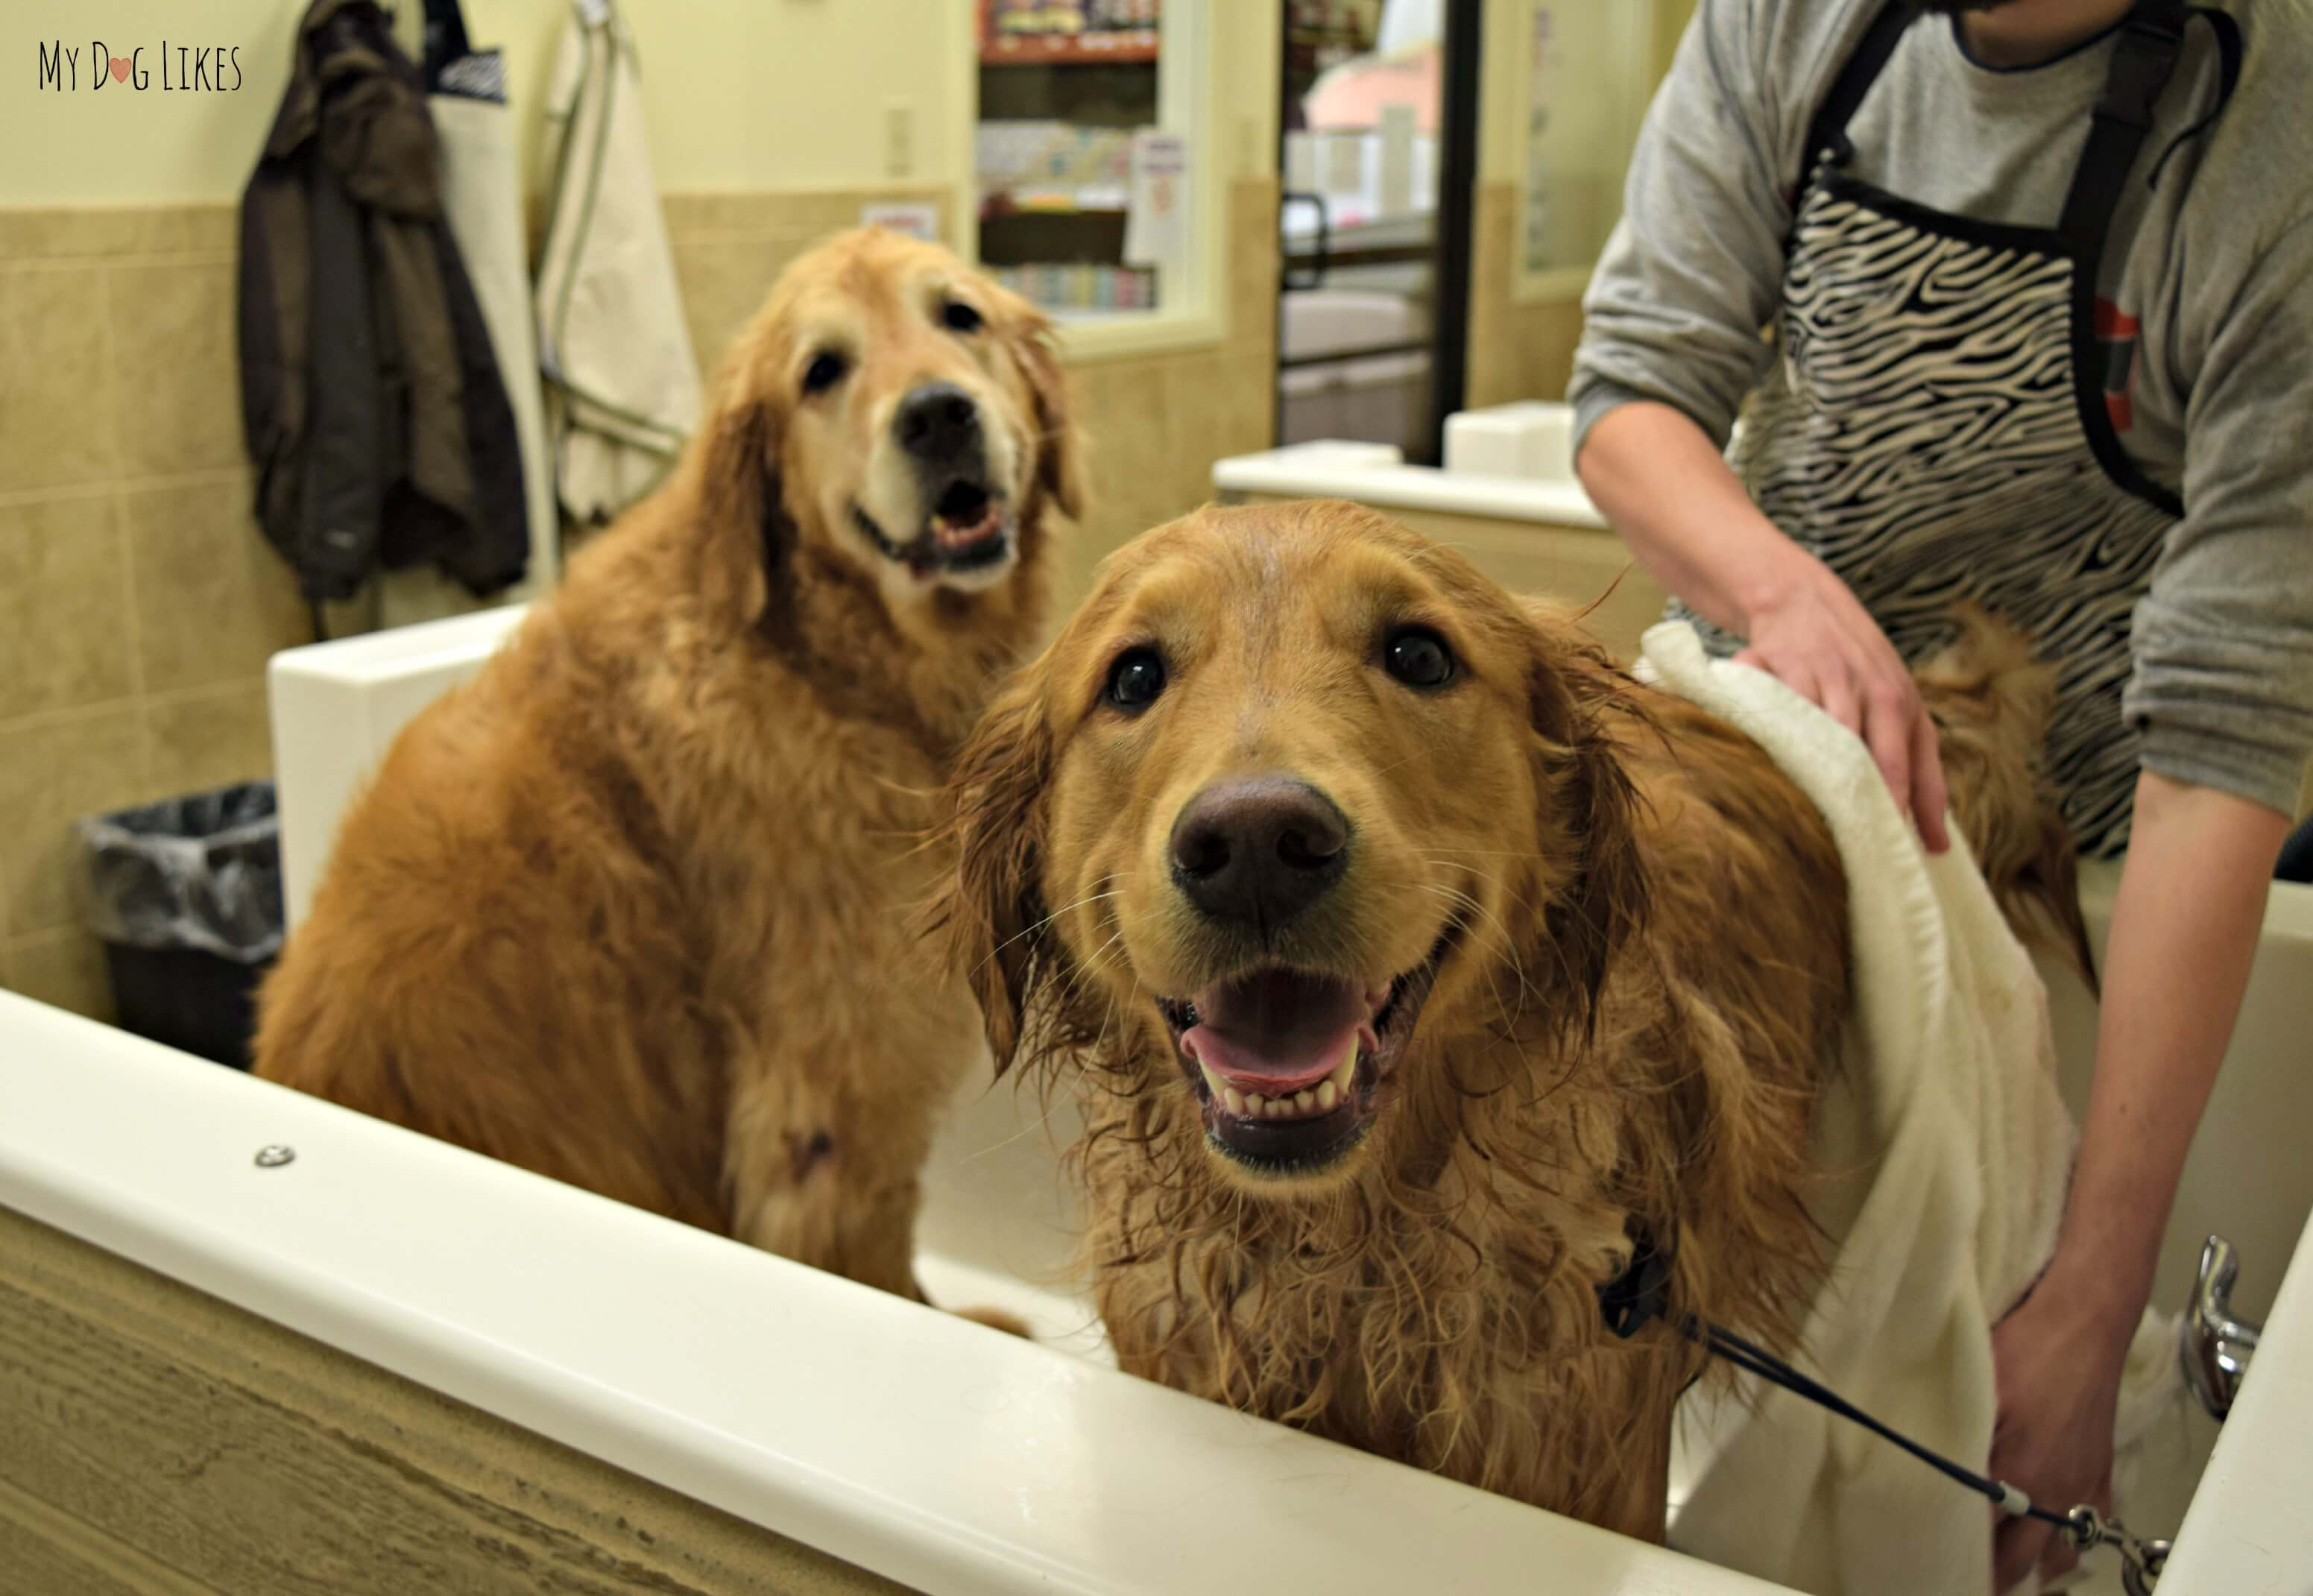 Self wash petsaver healthy pet superstore harley jumped into the dog bath tub while we were giving charlie a bath solutioingenieria Gallery